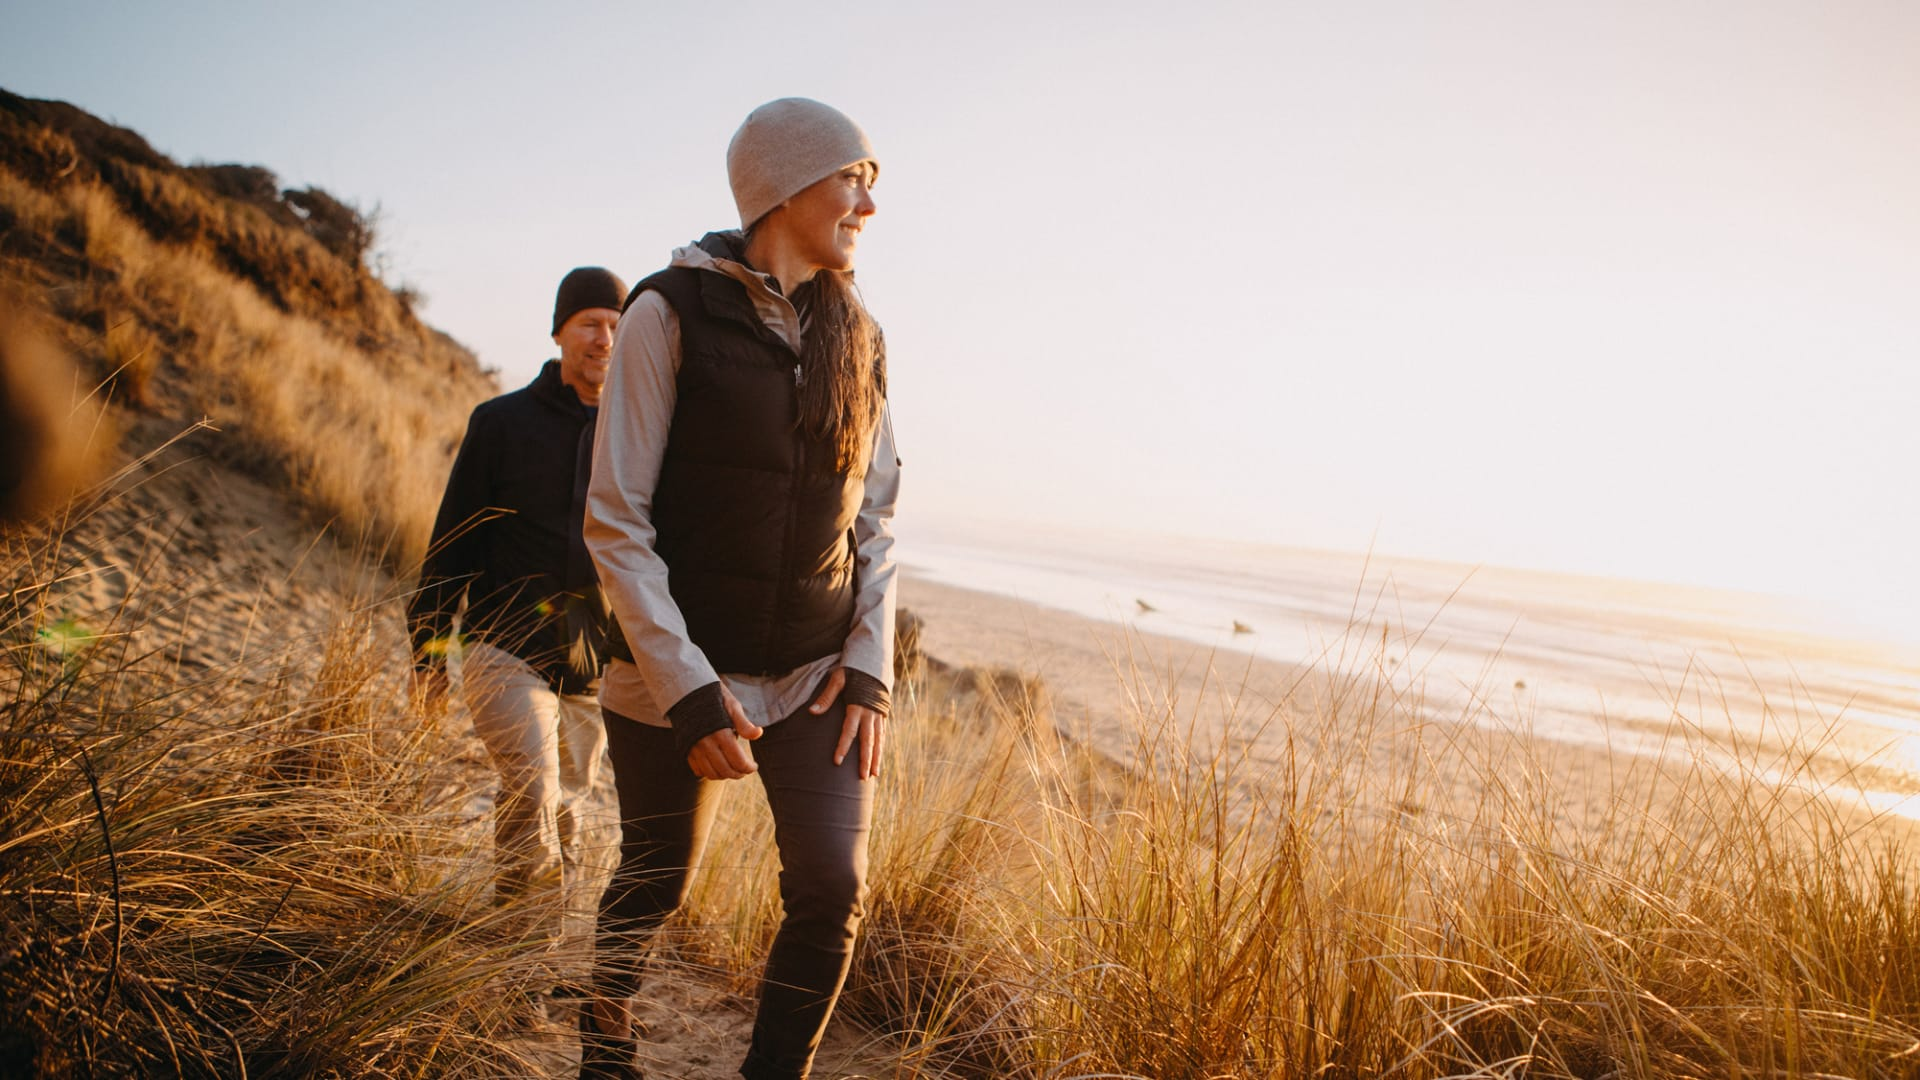 New Study: A 15-Minute 'Awe Walk' Kills Stress and Loneliness and Boosts Happiness